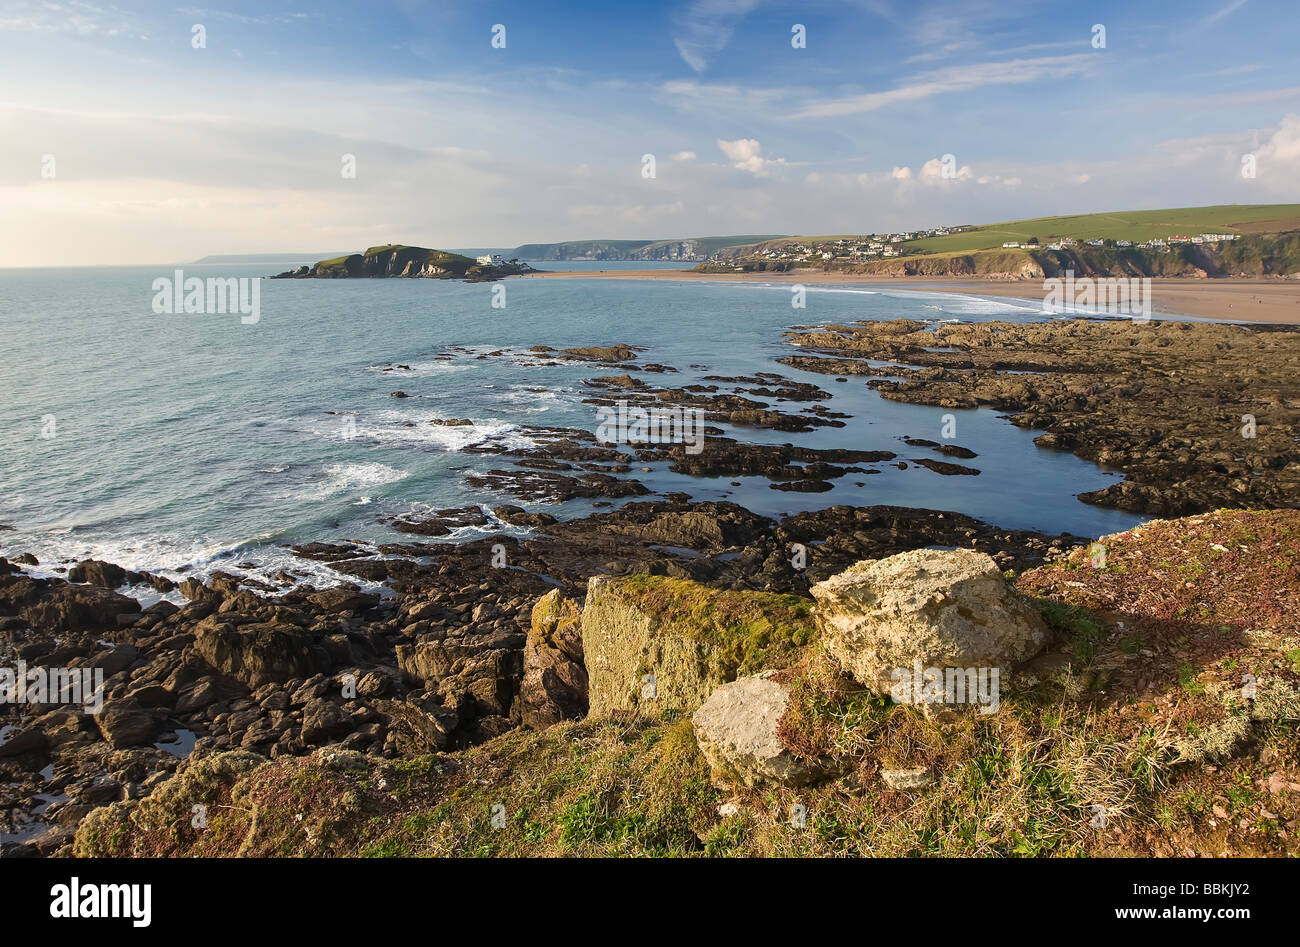 View of Burgh Island and Bigbury from Bantham Bay, South Devon, UK - Stock Image